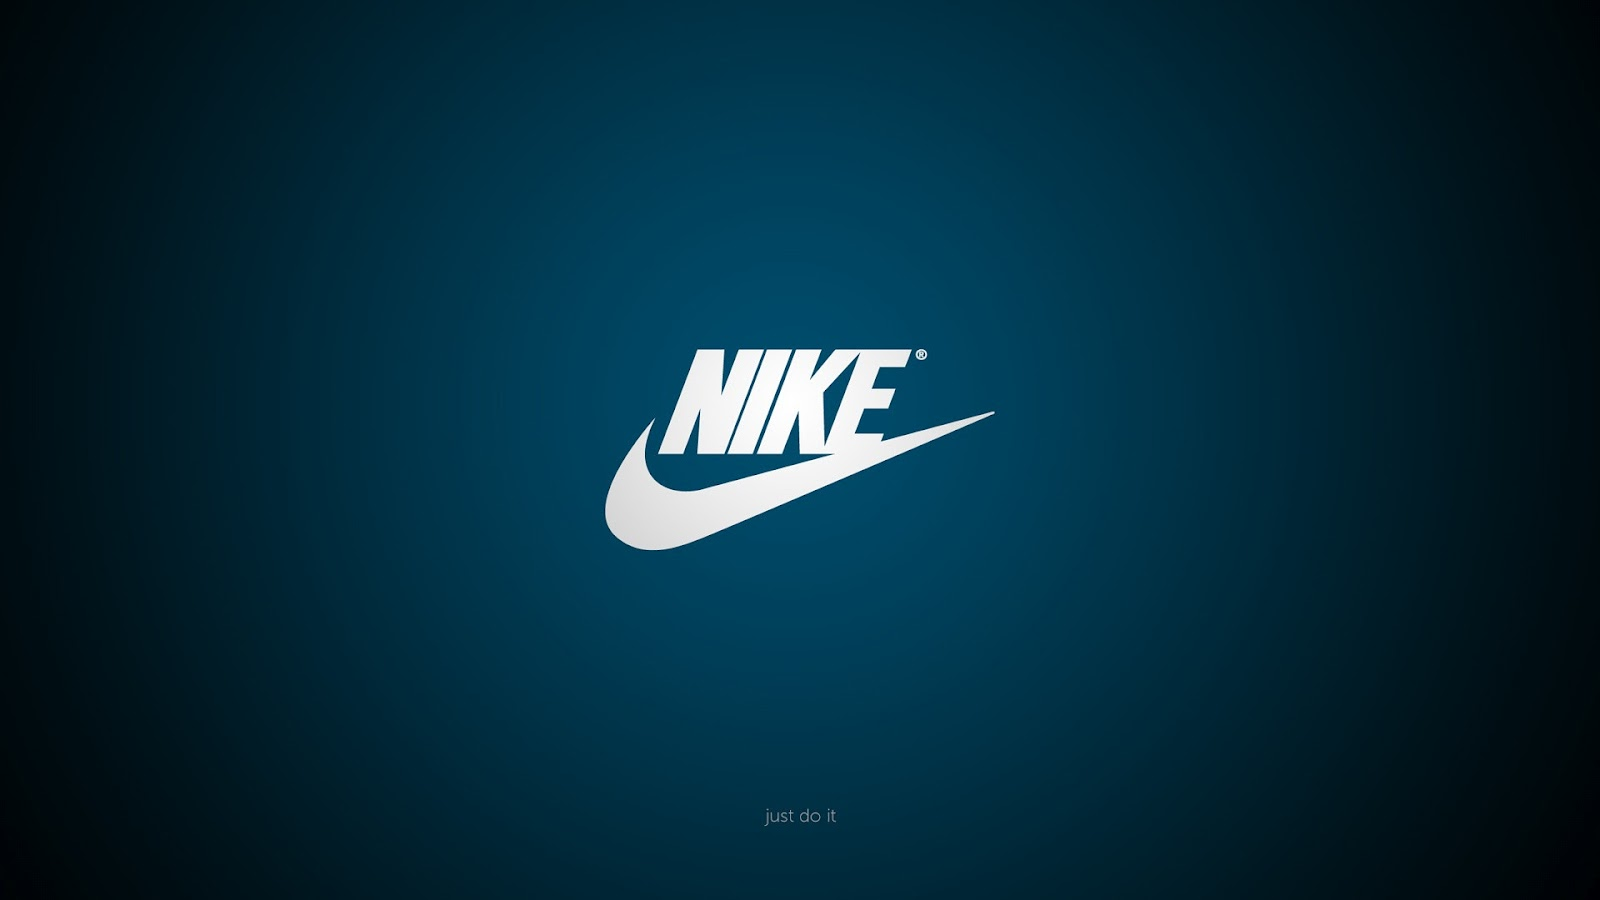 Brand Logo Minimal HD Wallpapers Download Wallpapers in HD 1600x900